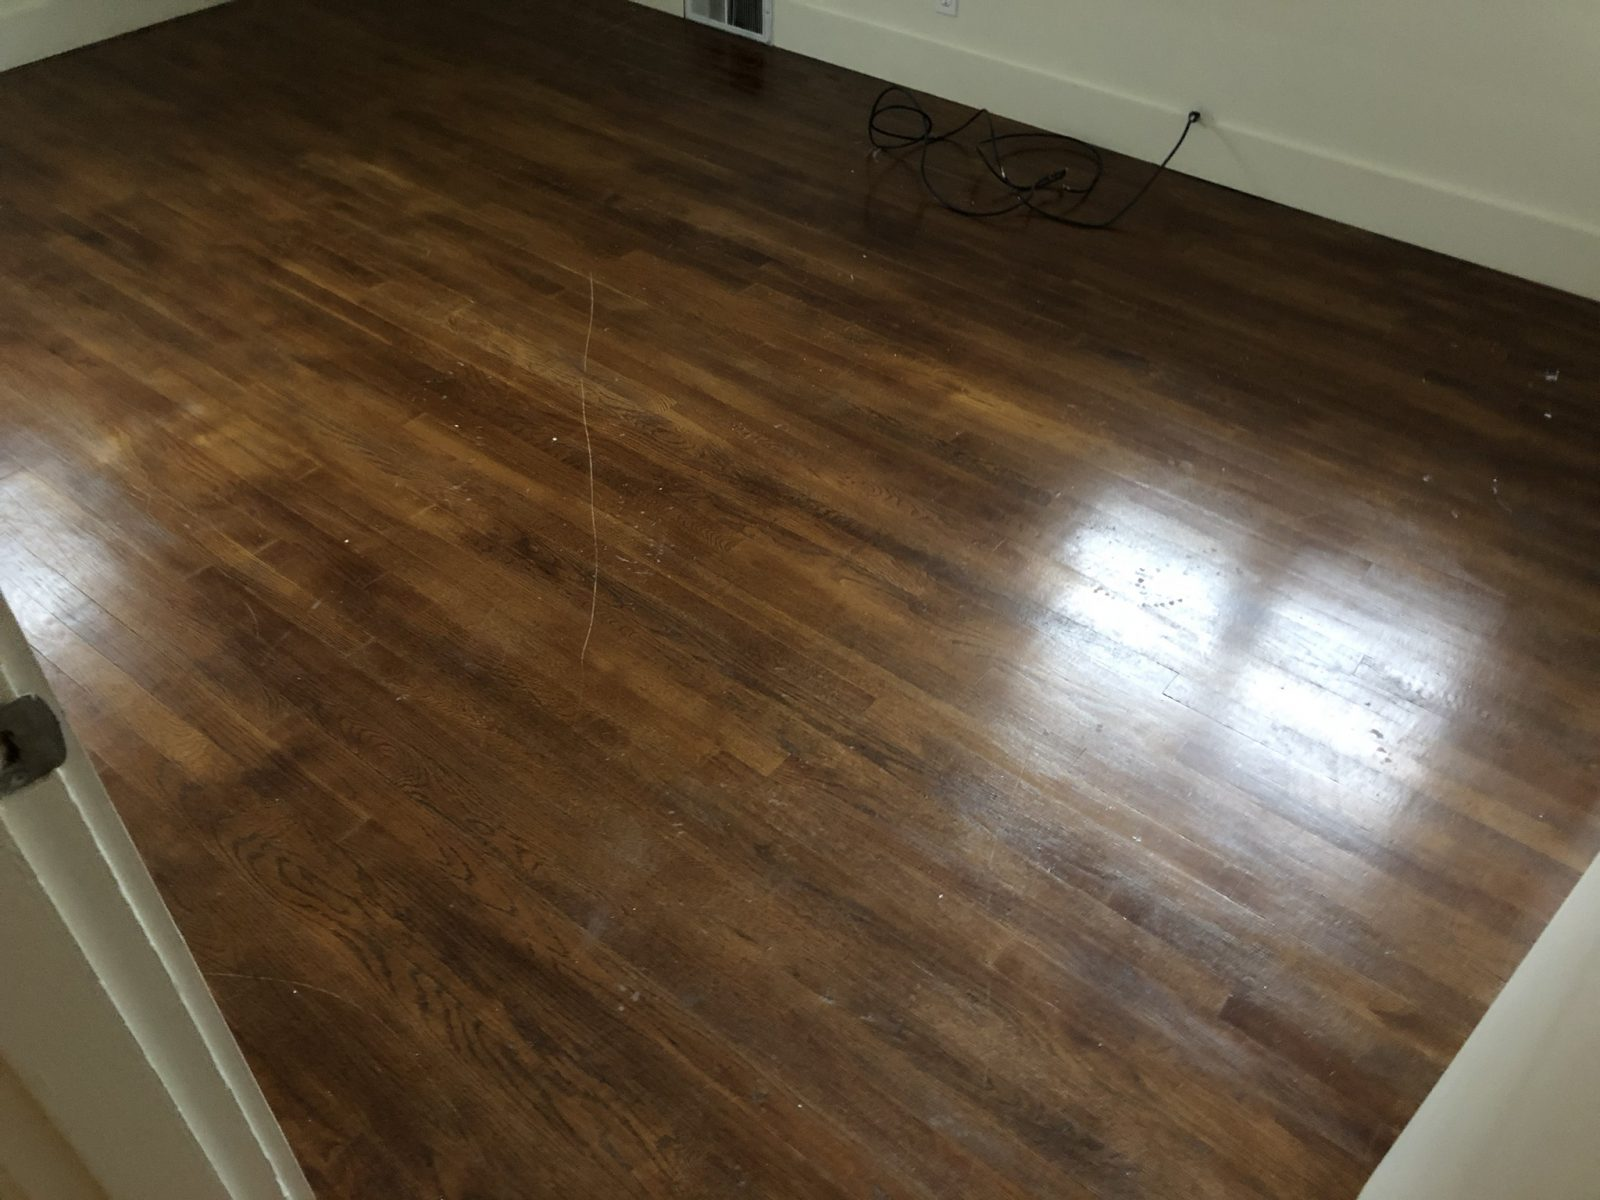 Professional Hardwood Floor Cleaning Morrow Ohio by Howards Cleaning Service